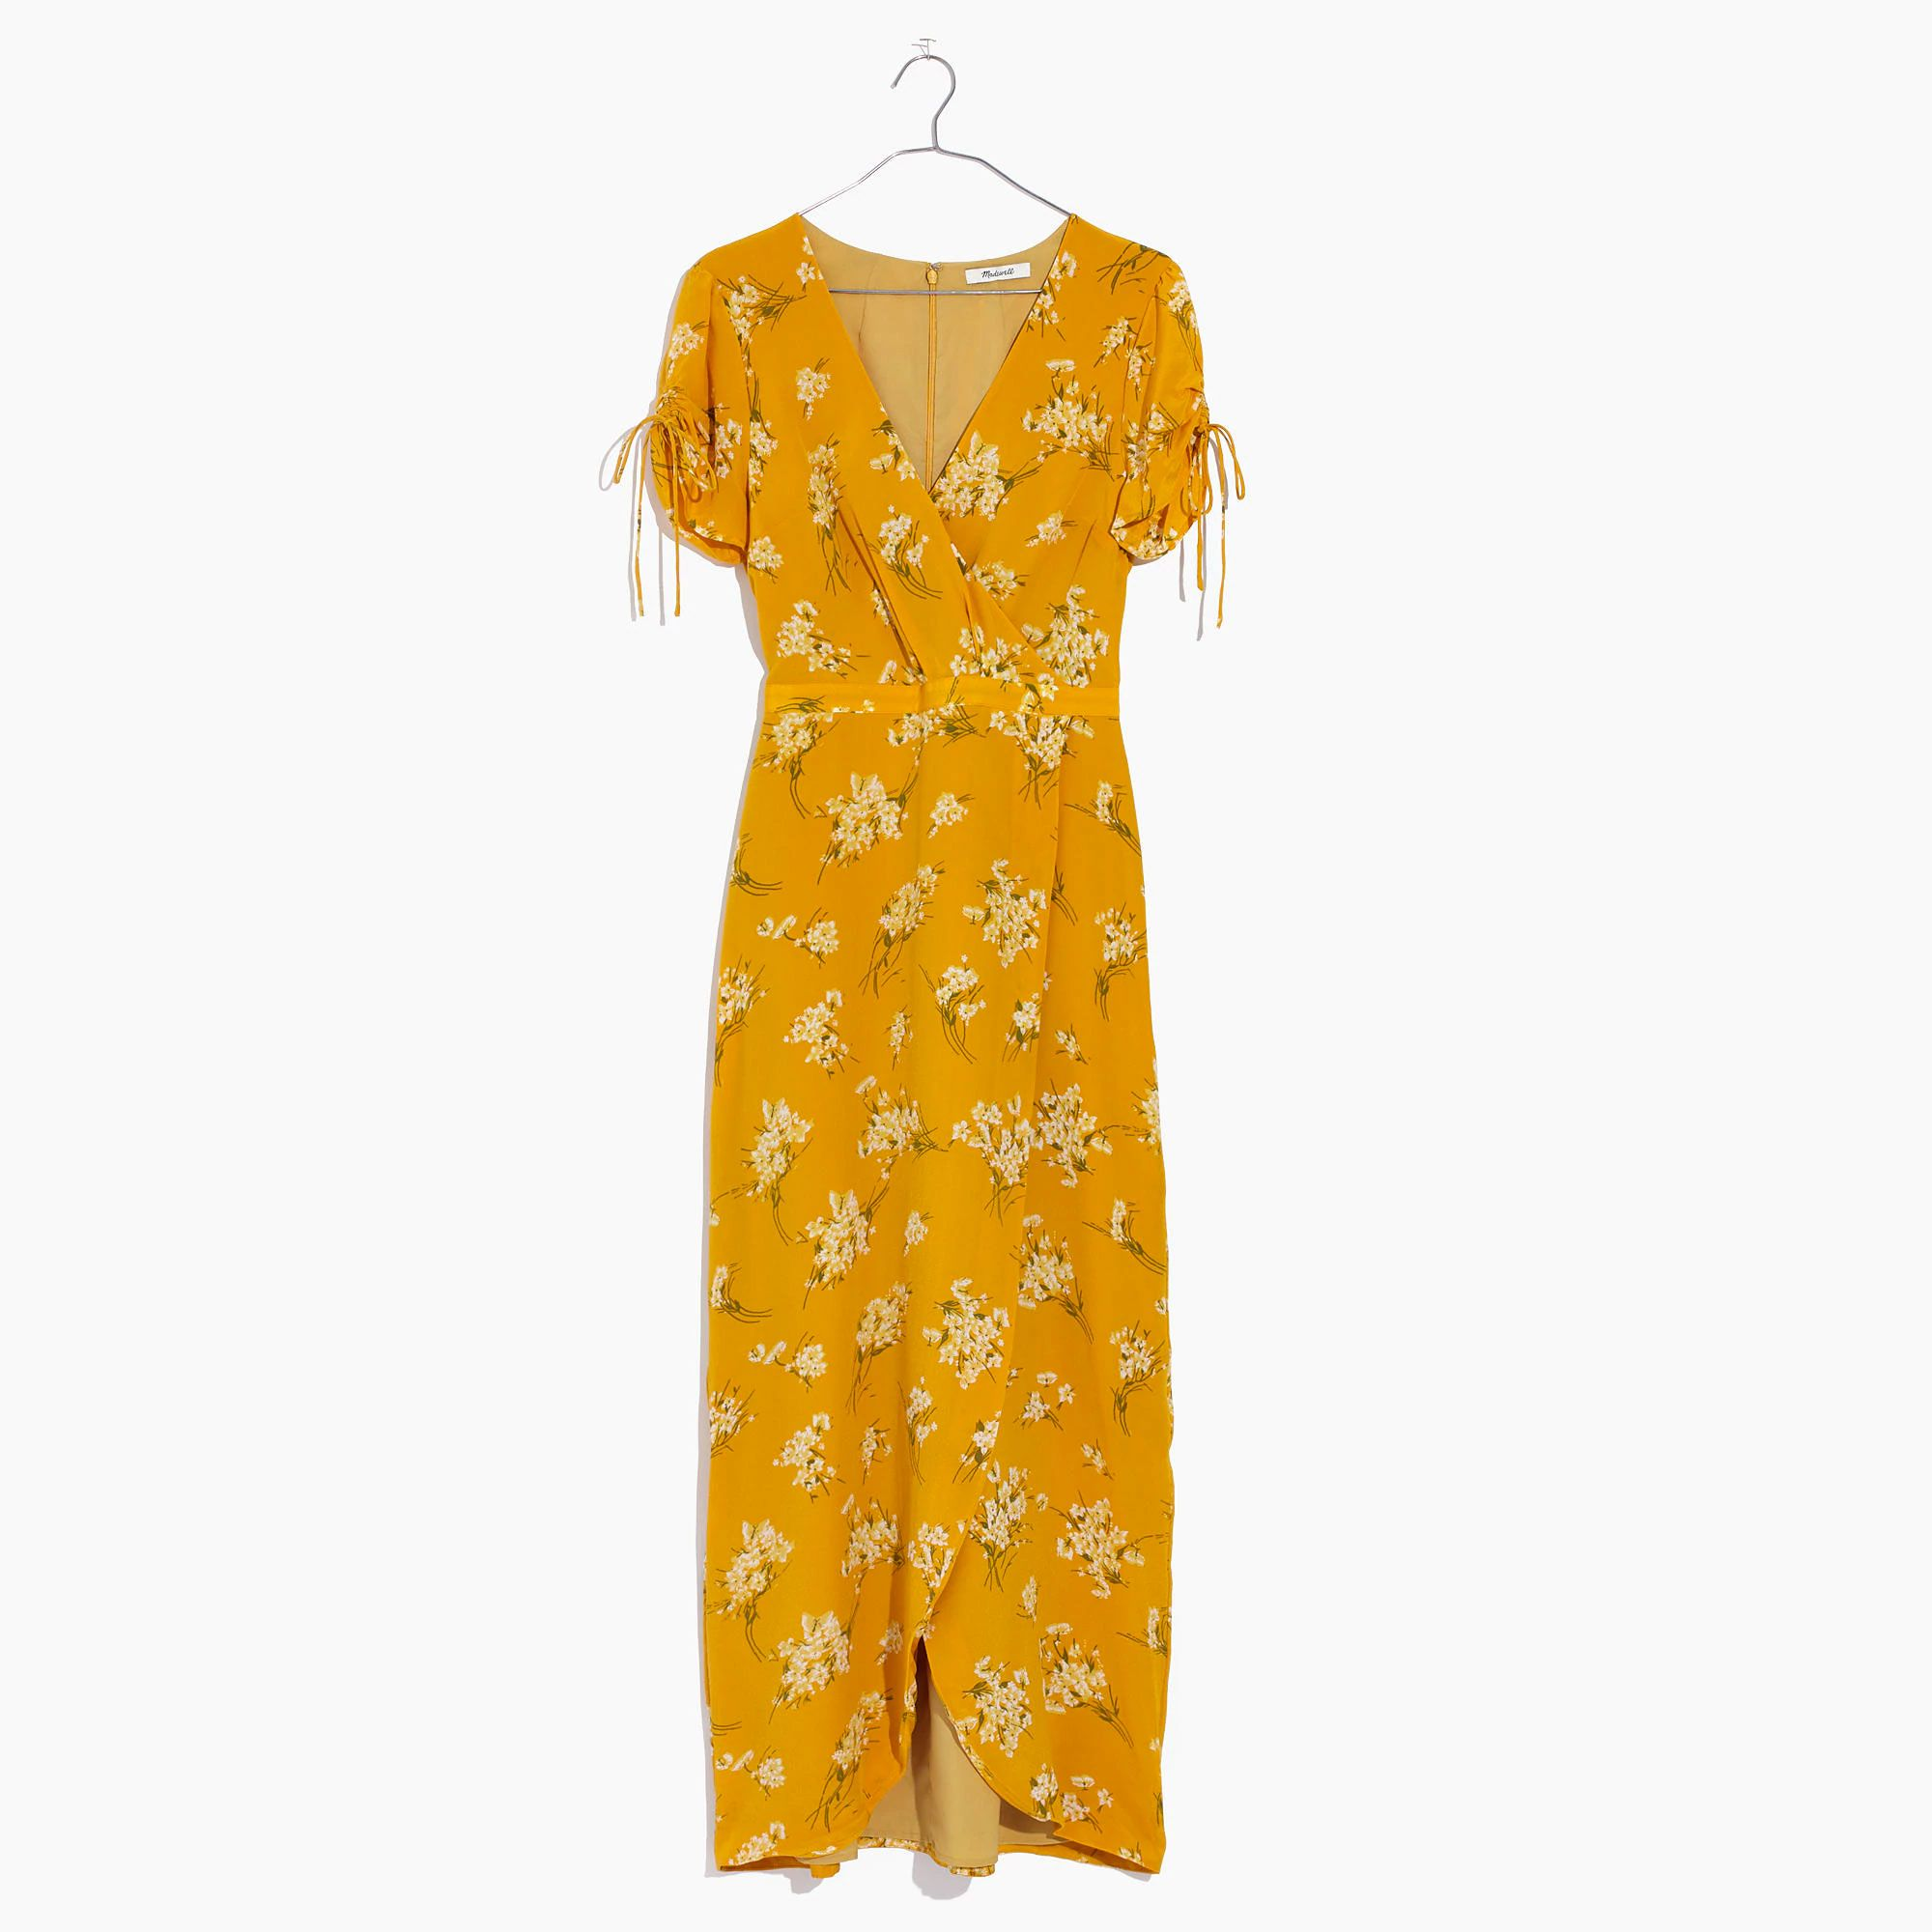 Madewell maxi wrap dress